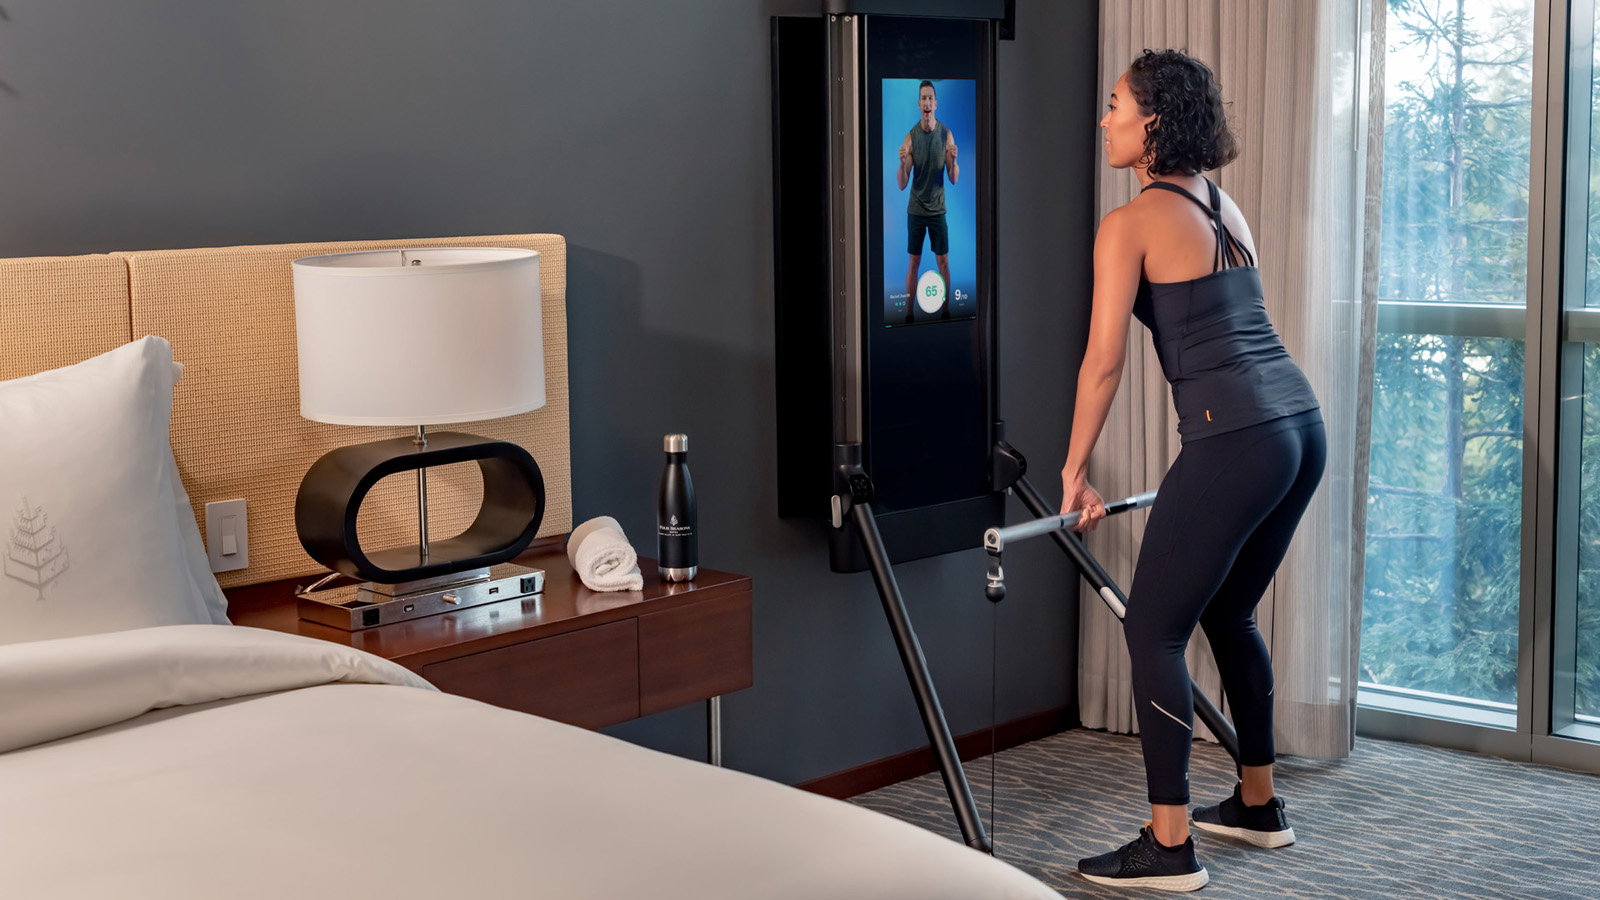 Select Four Seasons Silicon Valley guestrooms feature Tonal, an all-in-one fitness system and personal trainer.